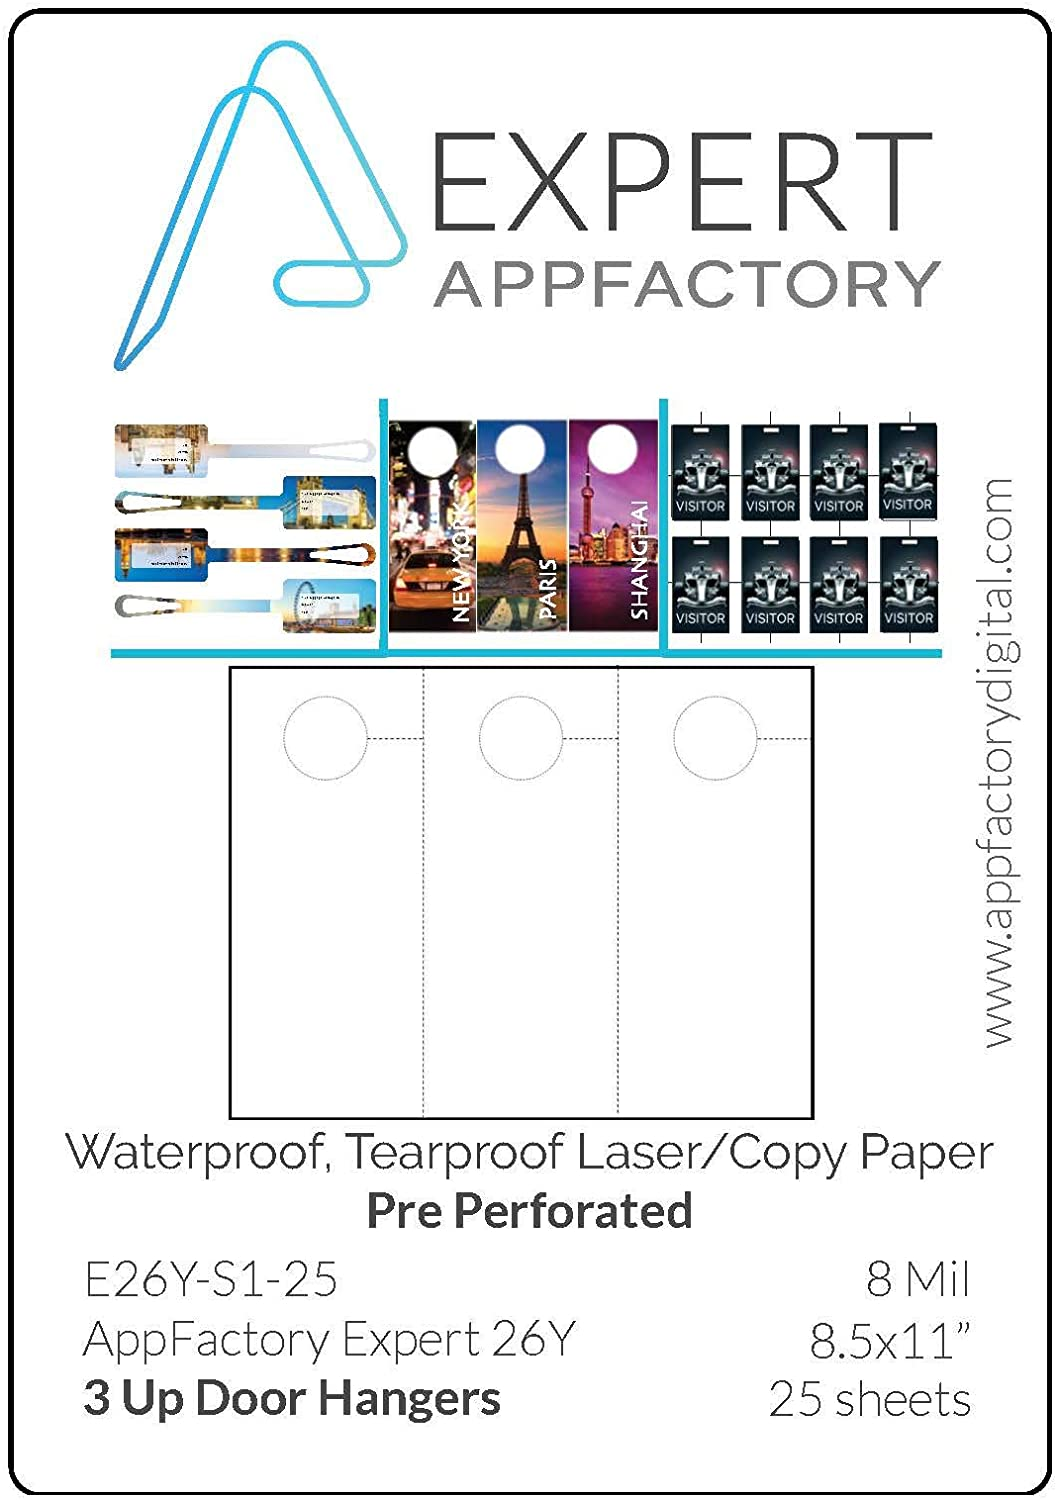 AppFactory EXPERT 8 Mil Pre-Perforated 3 Up Door Hangers Waterproof Tearproof Laser/Copy Paper - 25 sheet pack (8.5x11)